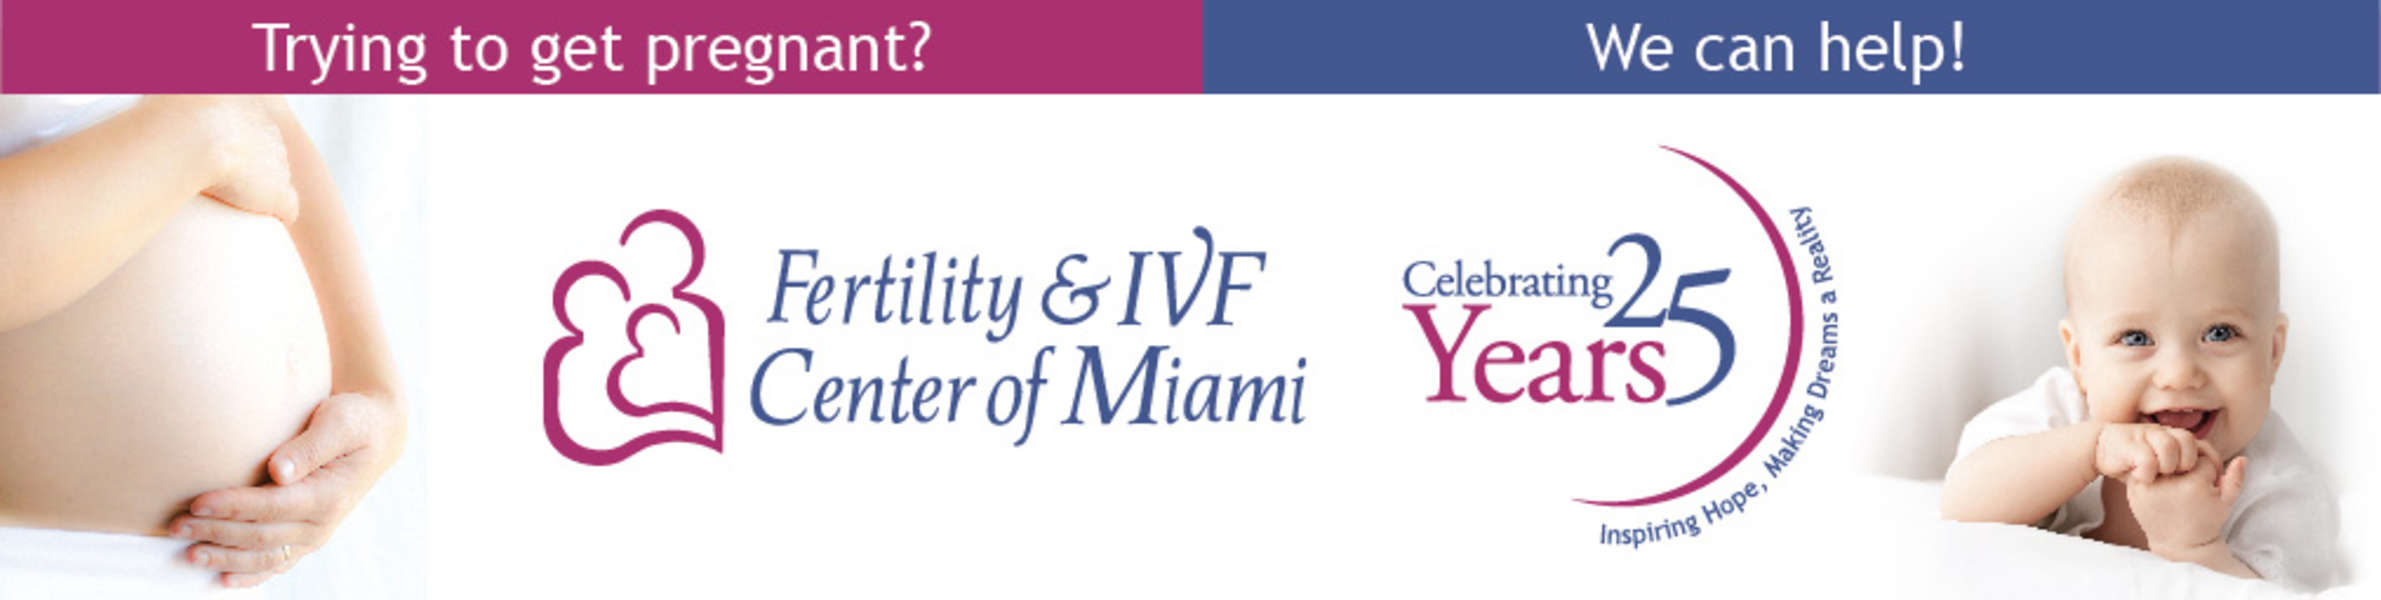 Fertility and IVF Center of Miami